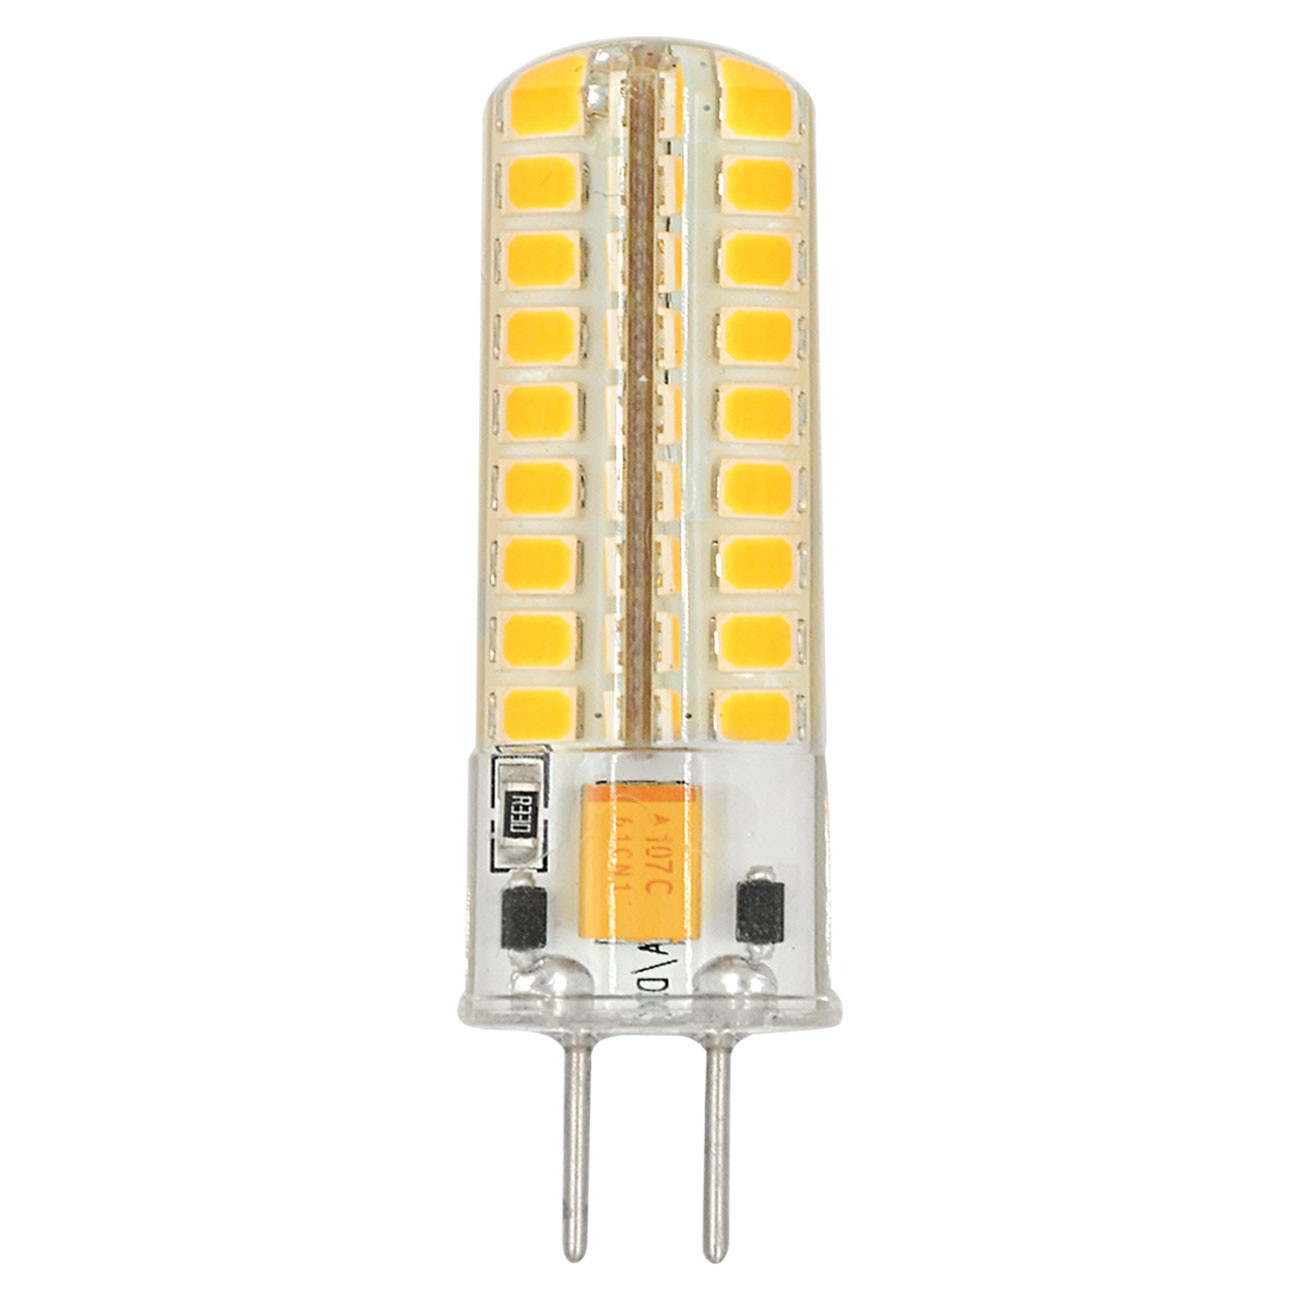 MENGS® GY6.35 5W LED Light 72x 2835 SMD With Silicone Material LED Bulb Lamp AC/DC 12V In Warm White Energy-Saving Light